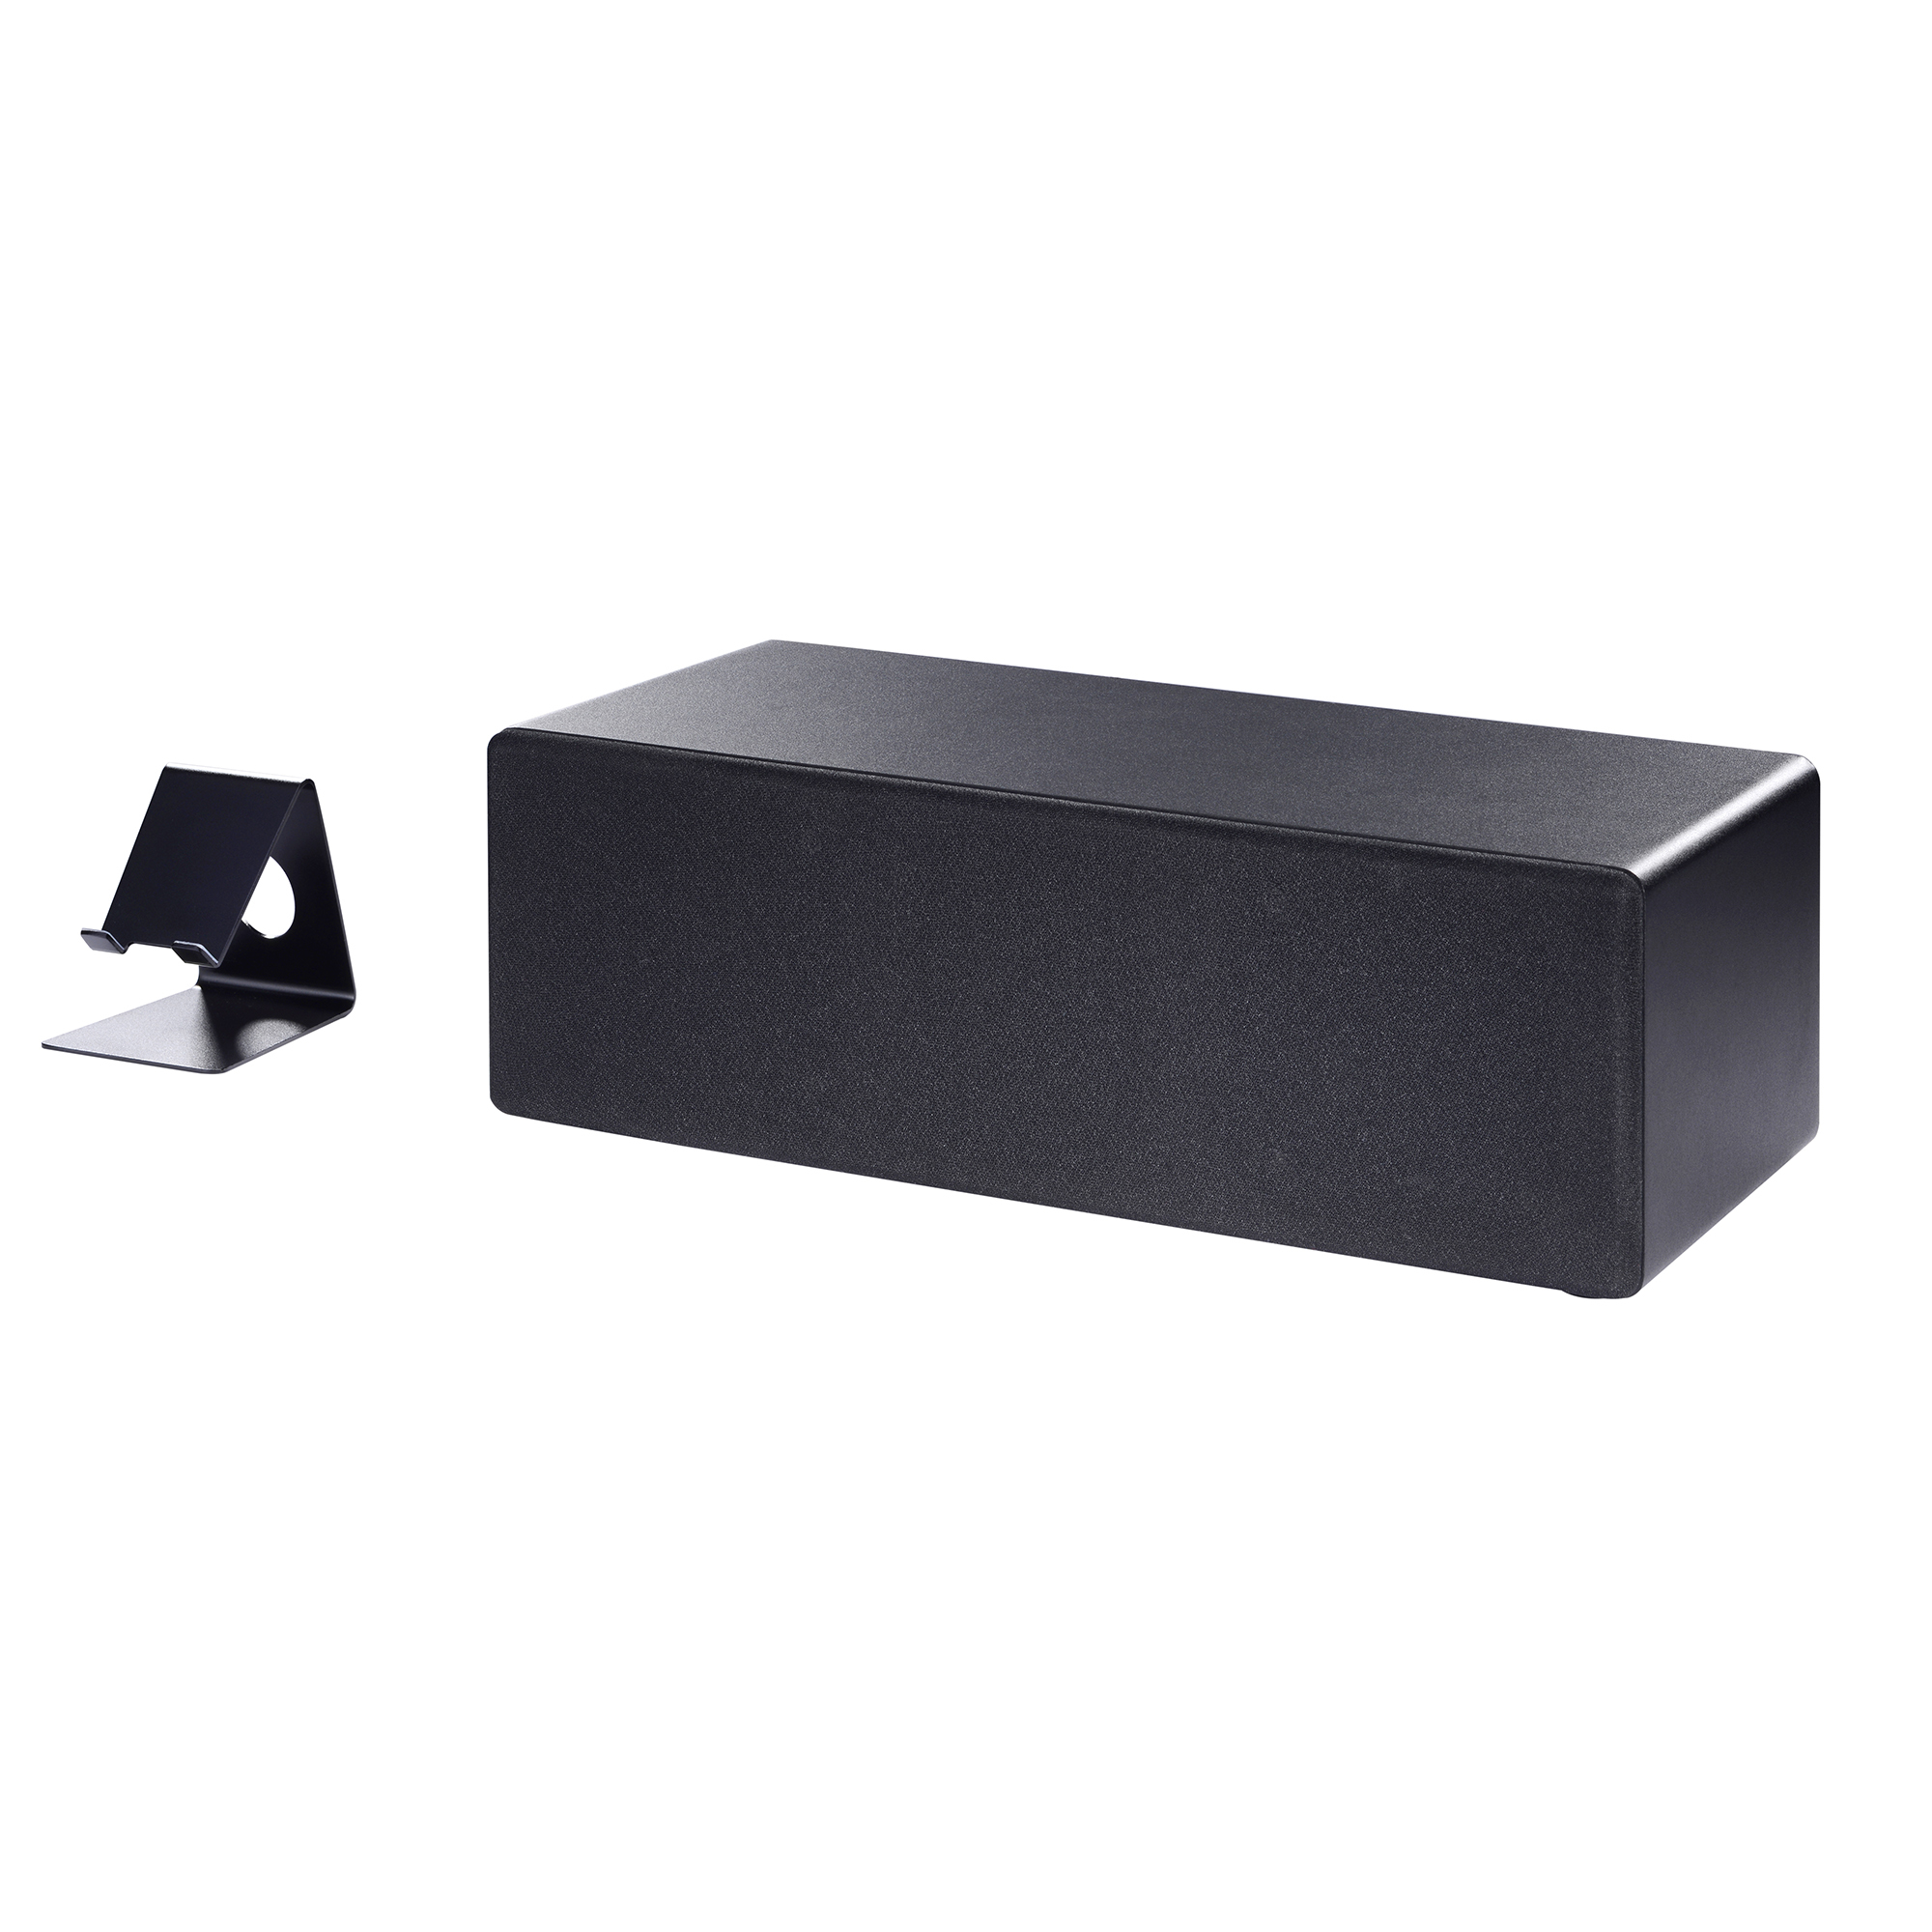 TERRATEC CONCERT BT 1 BLACK PIANO FINISH BLUETOOTH